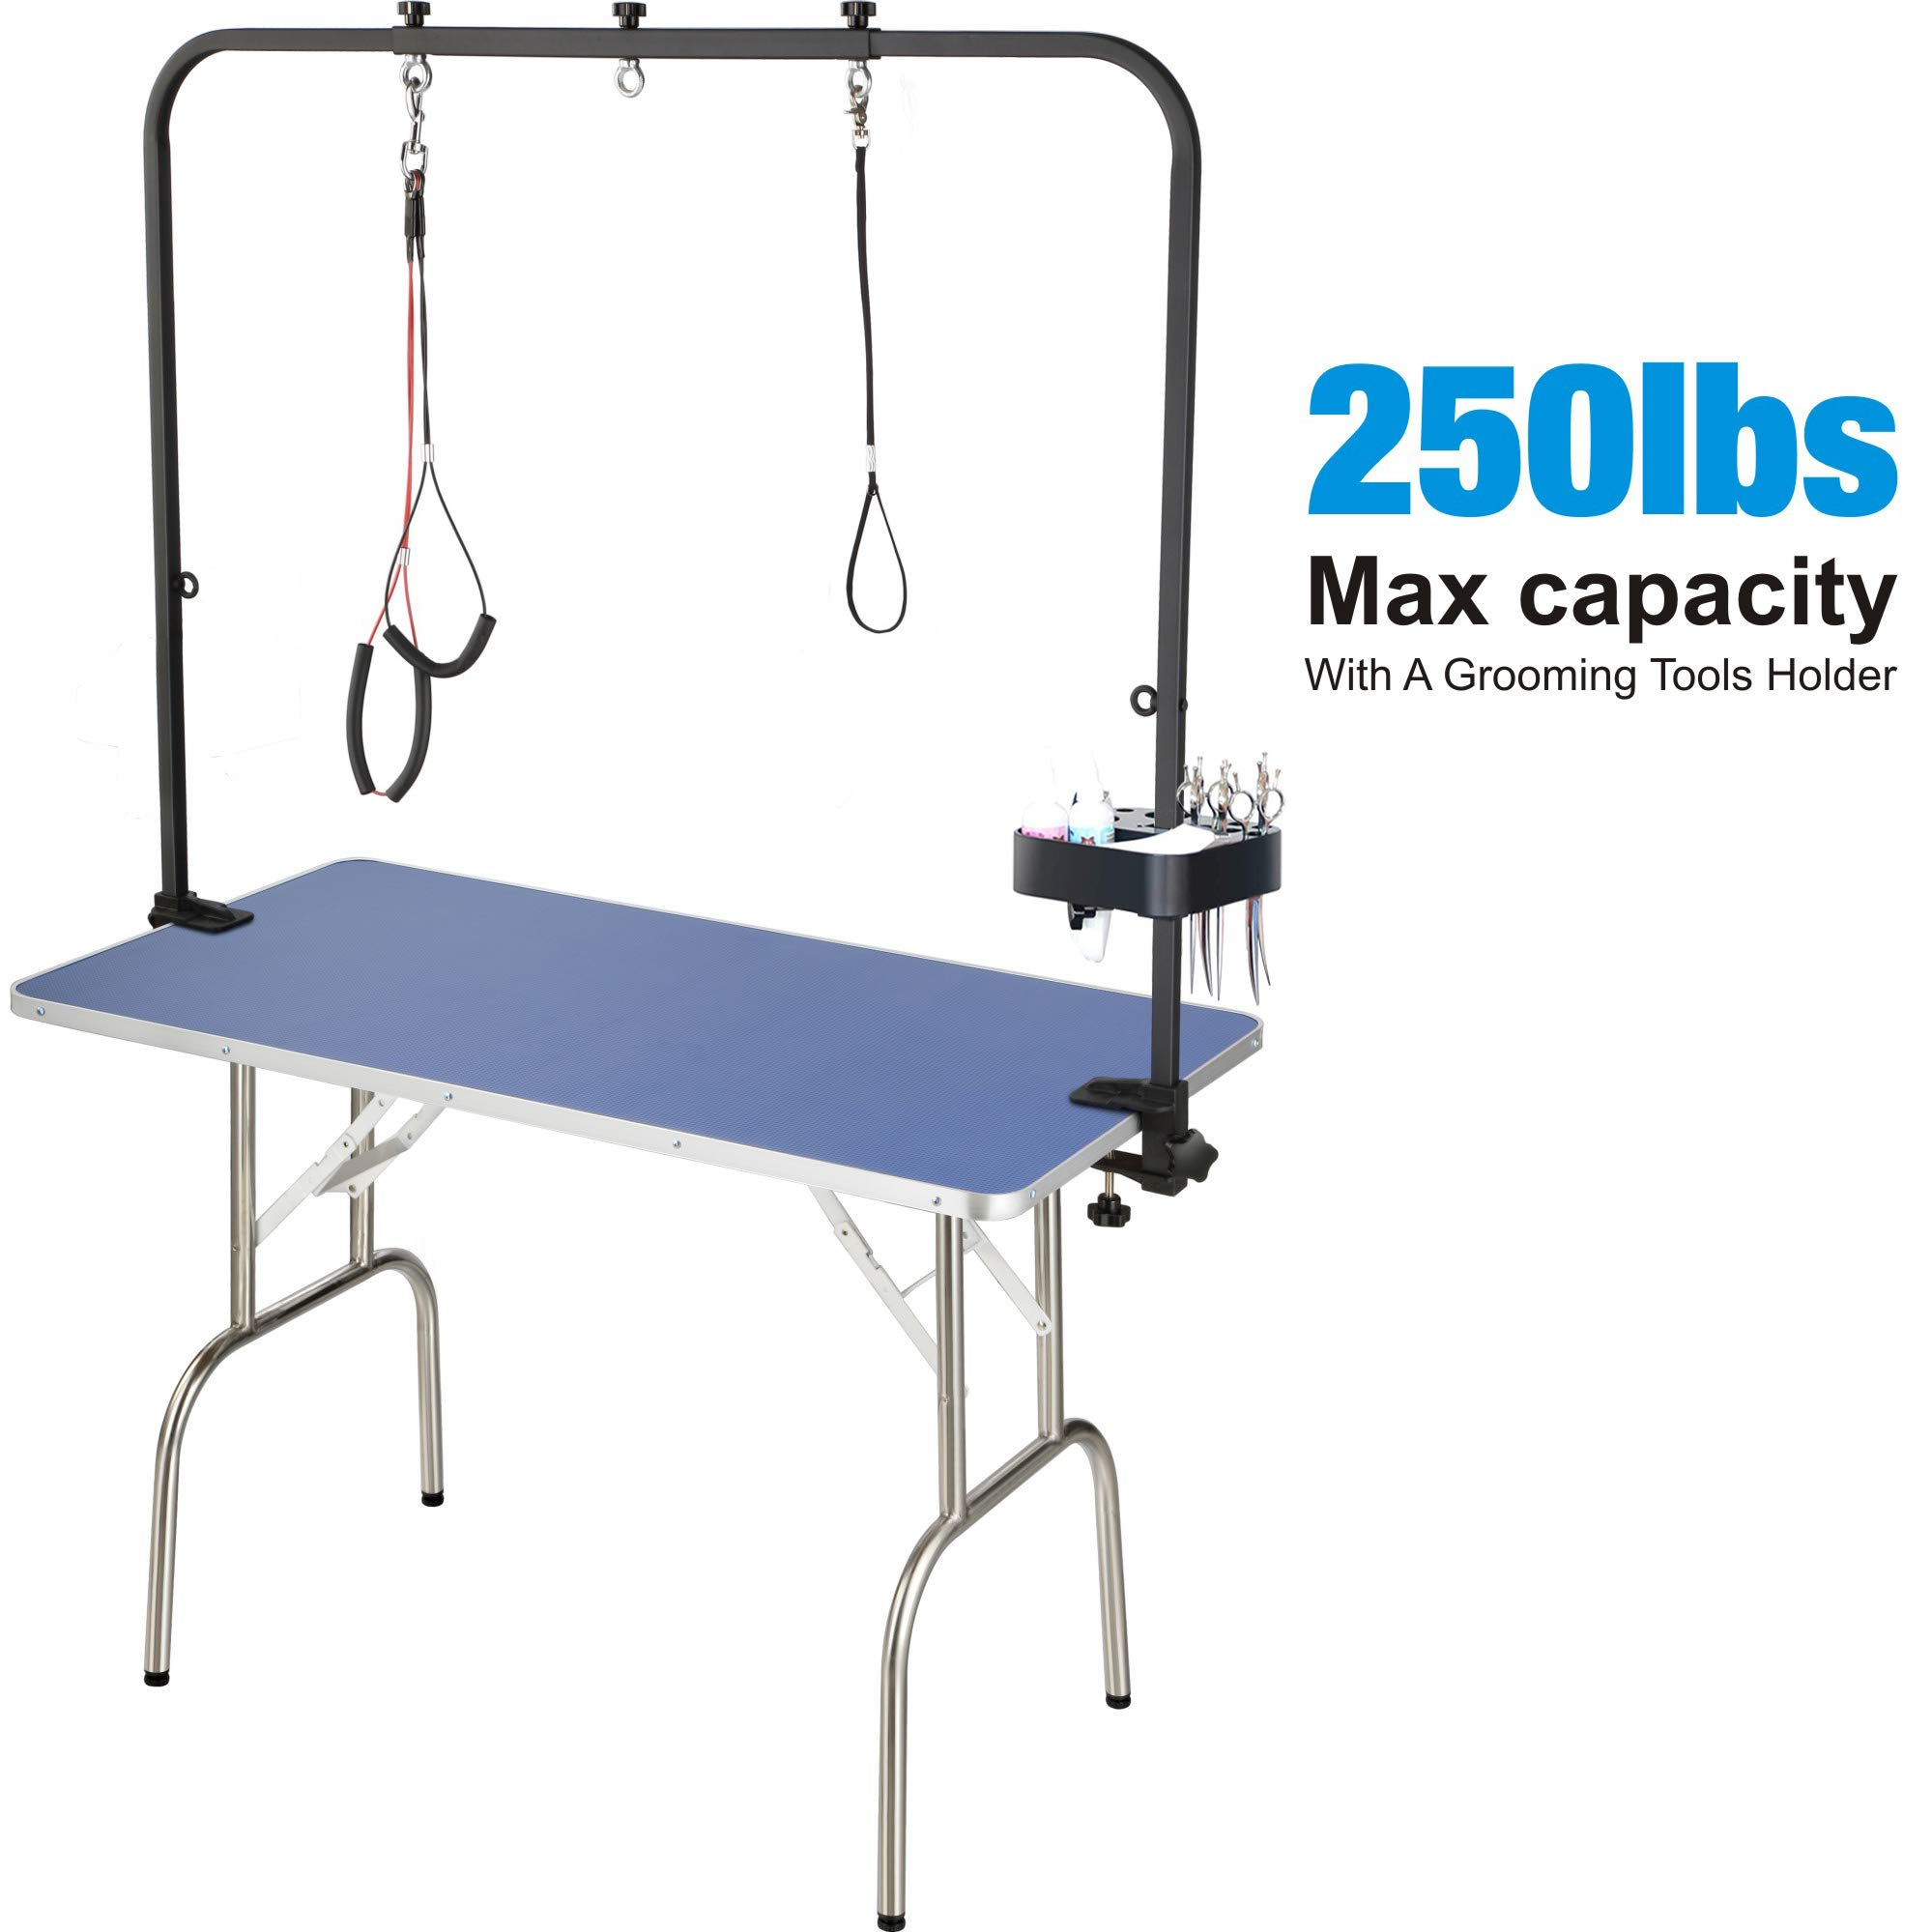 JY QAQA PET Professional Pet Dog Grooming Table with Adjustable Overhead Arm, 46'' Heavy Duty Foldable Stainless Steel Table with Noose,No-Sit Haunch Holder and Tools Holder